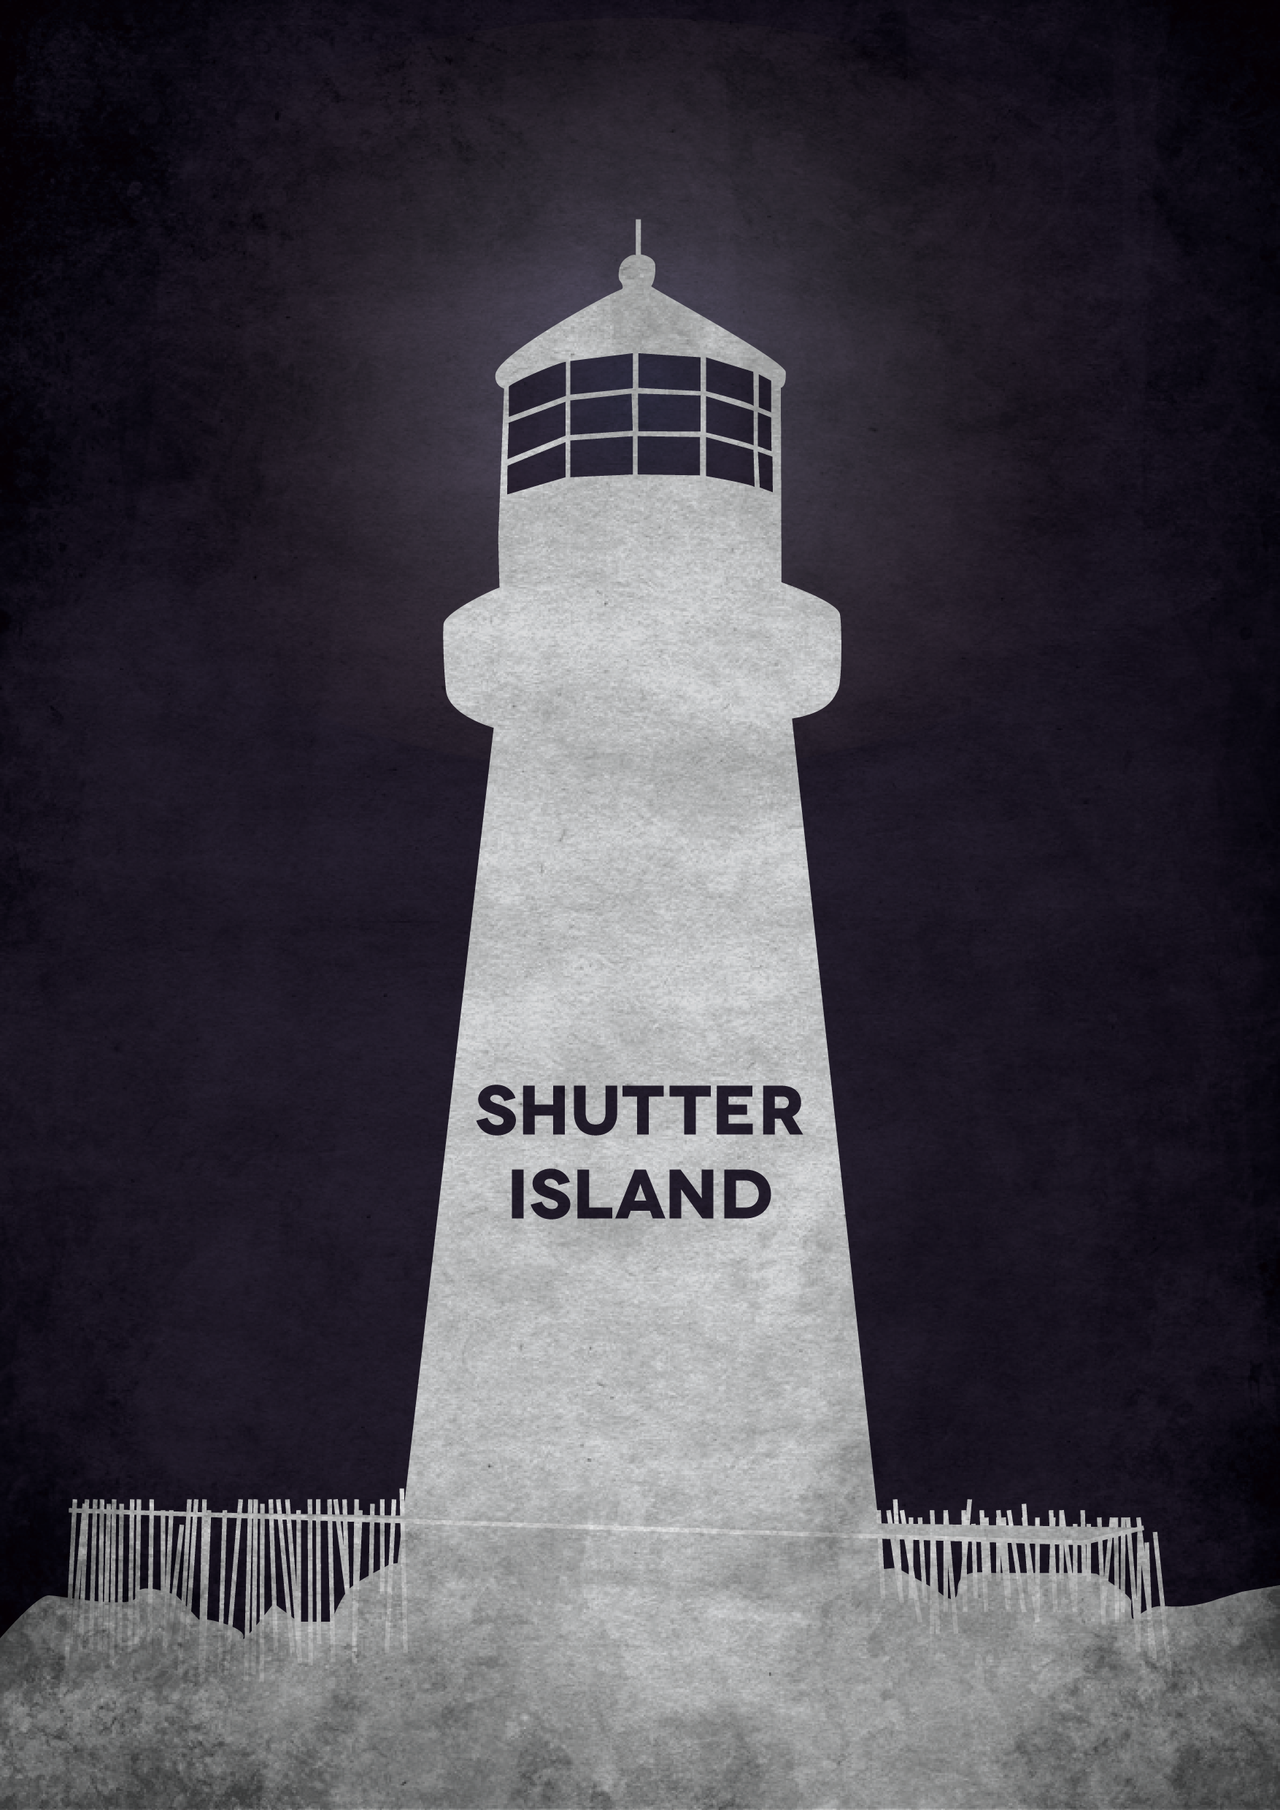 shutter island movie poster design movies shutter island movie poster